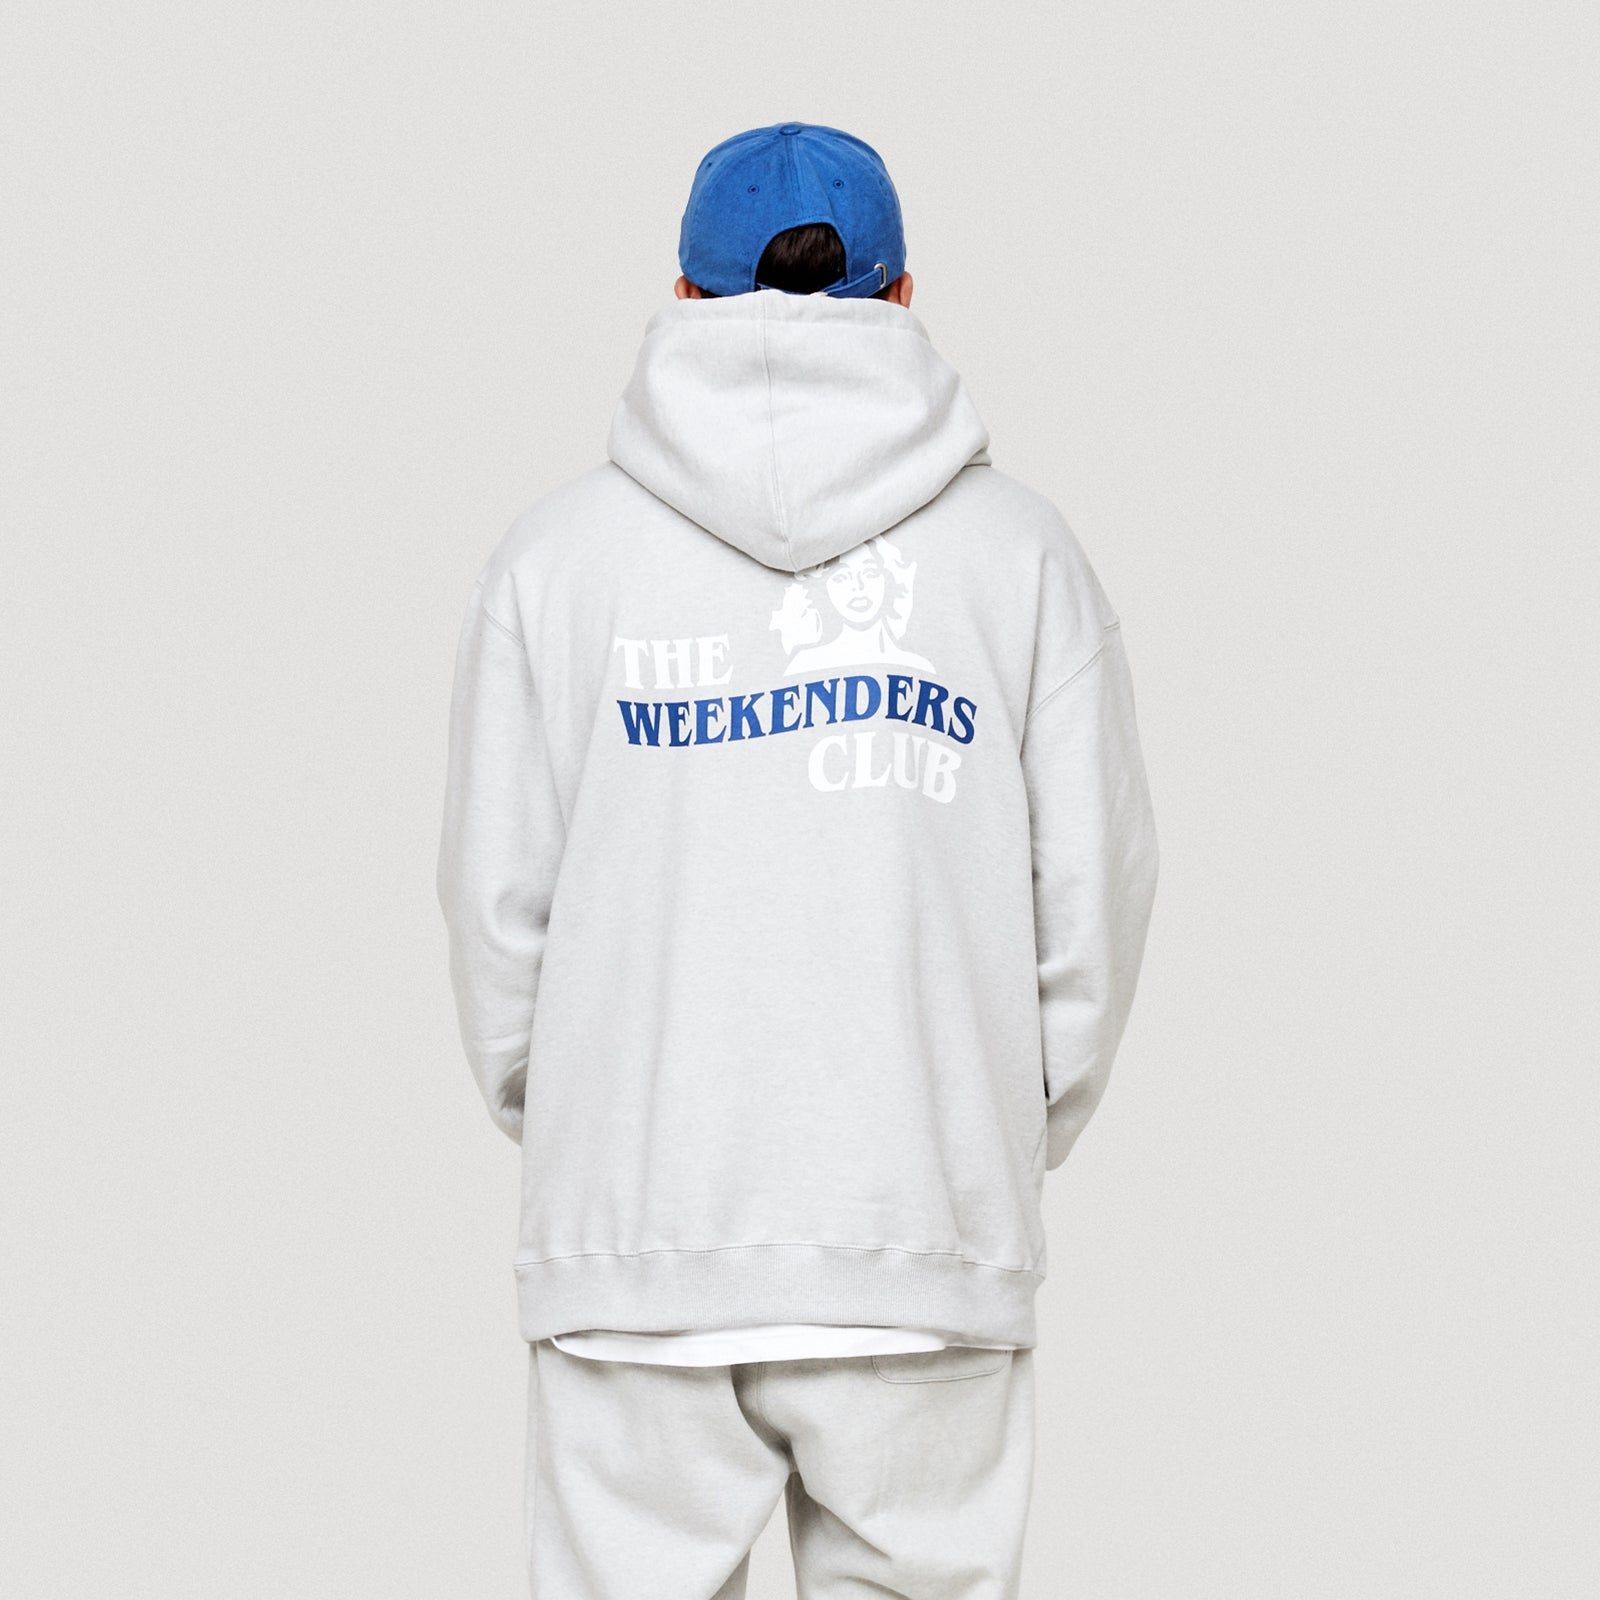 THE WEEKENDERS CLUB HOODIE (GREY)